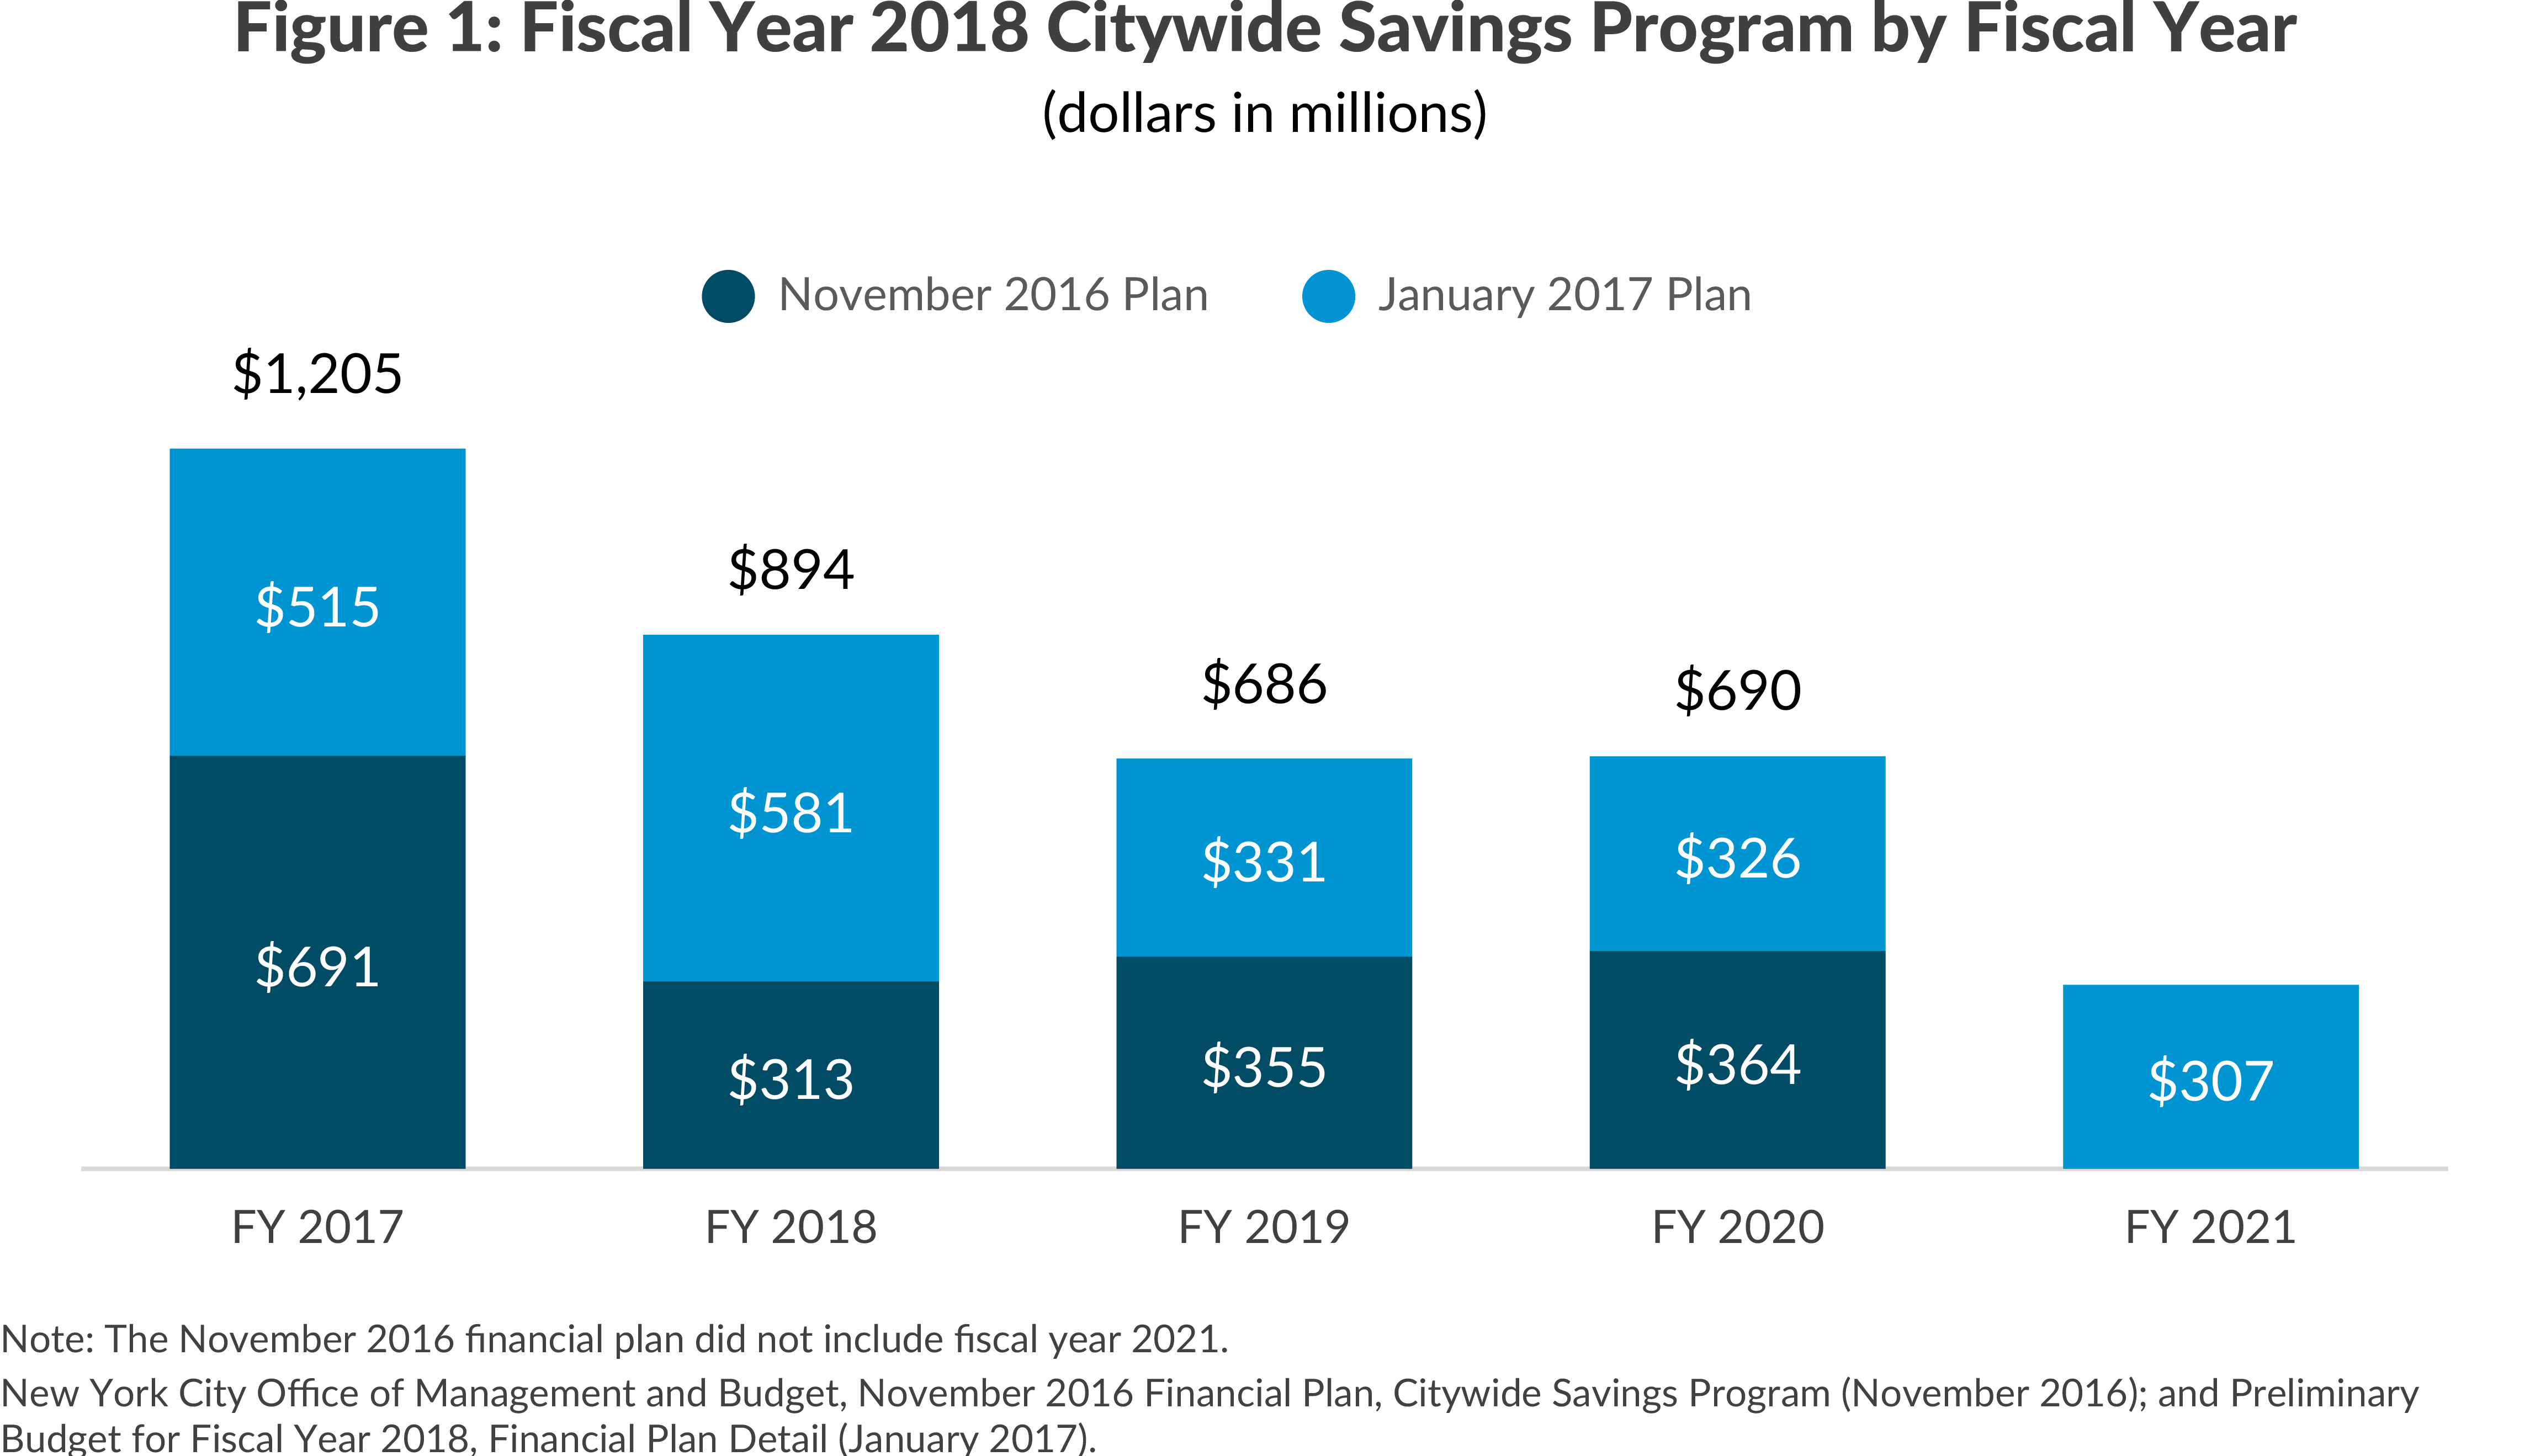 FY2018 Citywide Savings Program by Fiscal Year